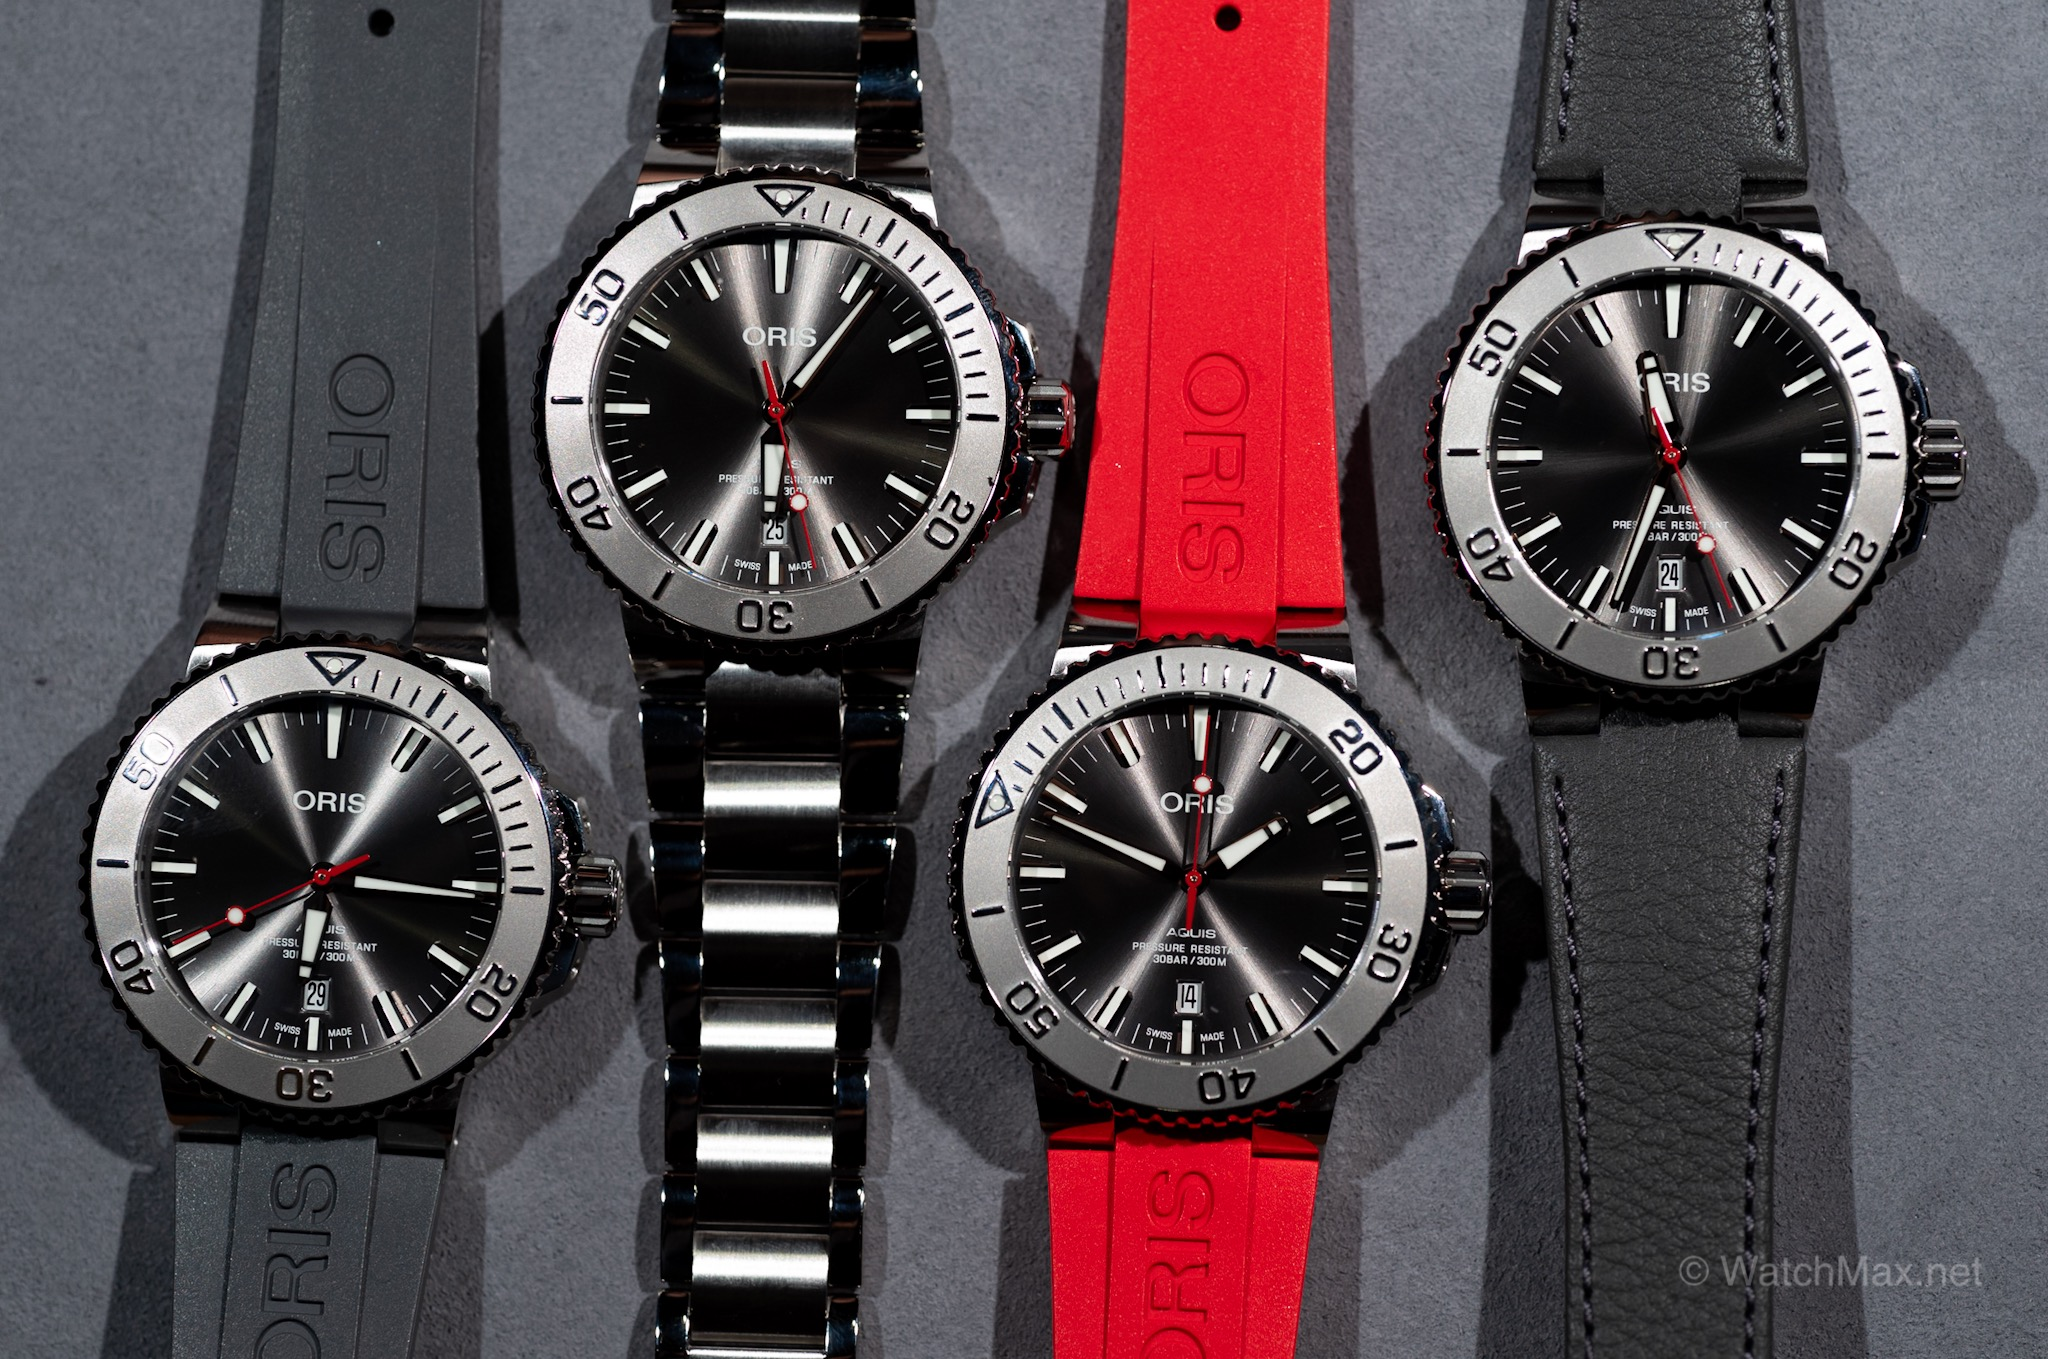 Aquis Date Relief with all the different strap and bracelet options